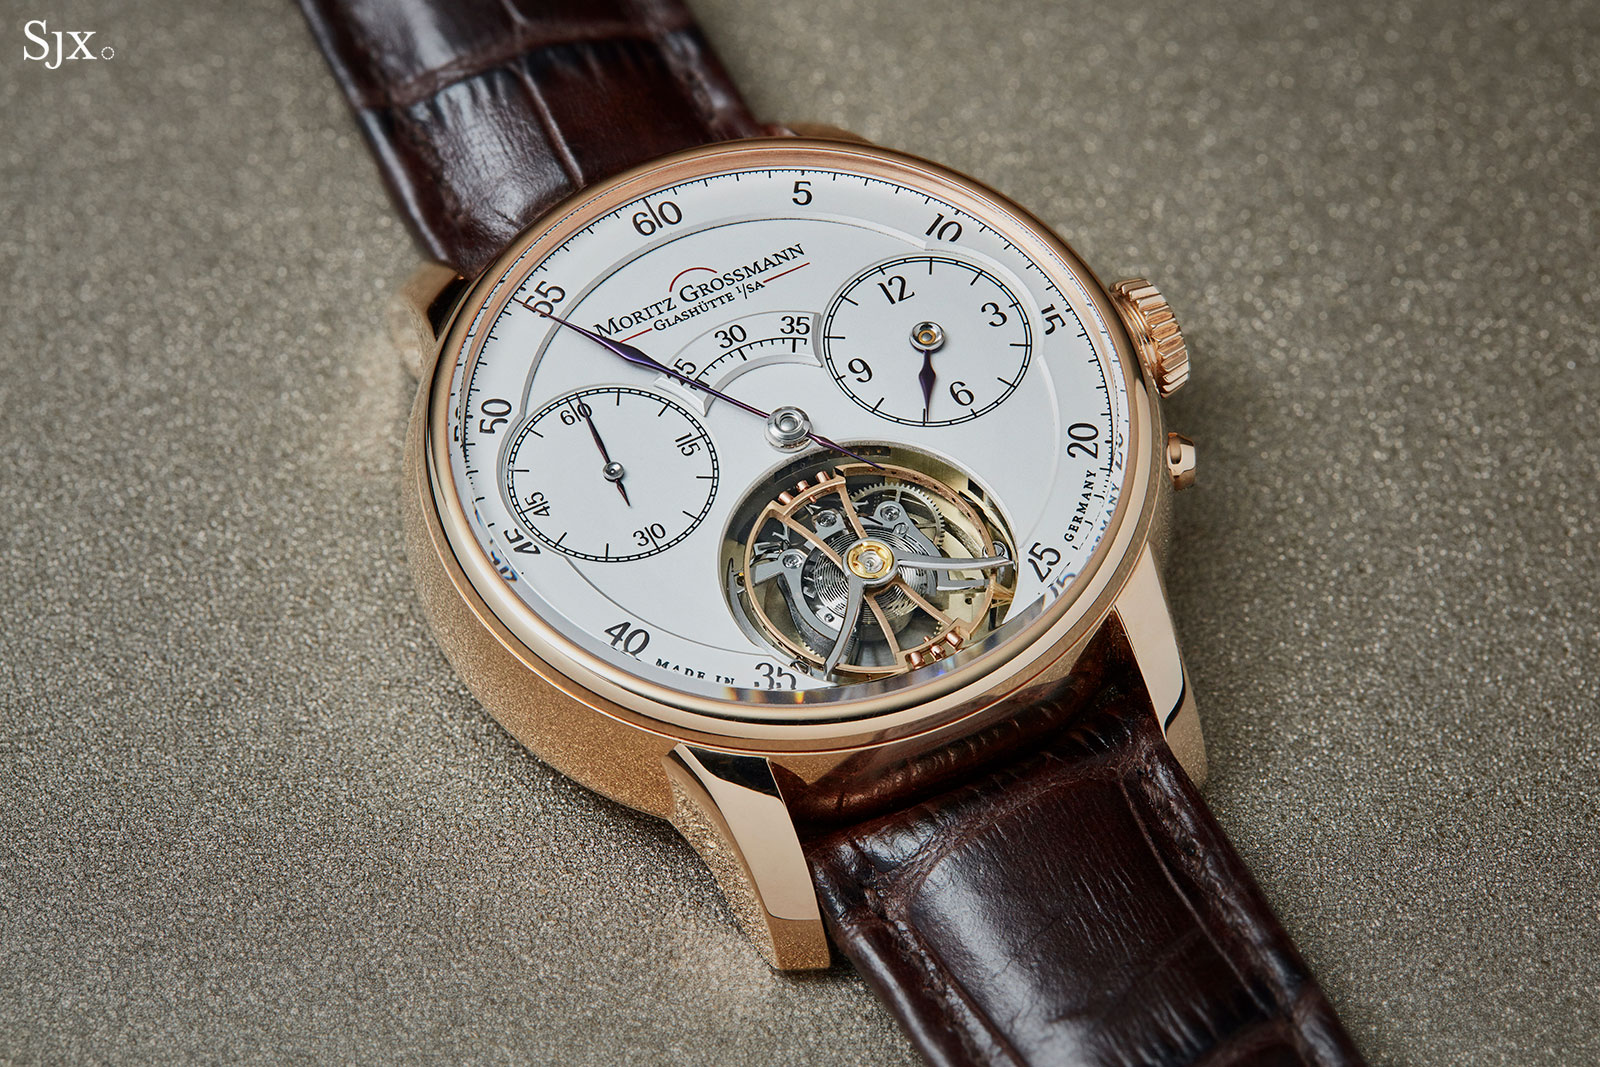 Moritz Grossmann Benu tourbillon rose gold 5